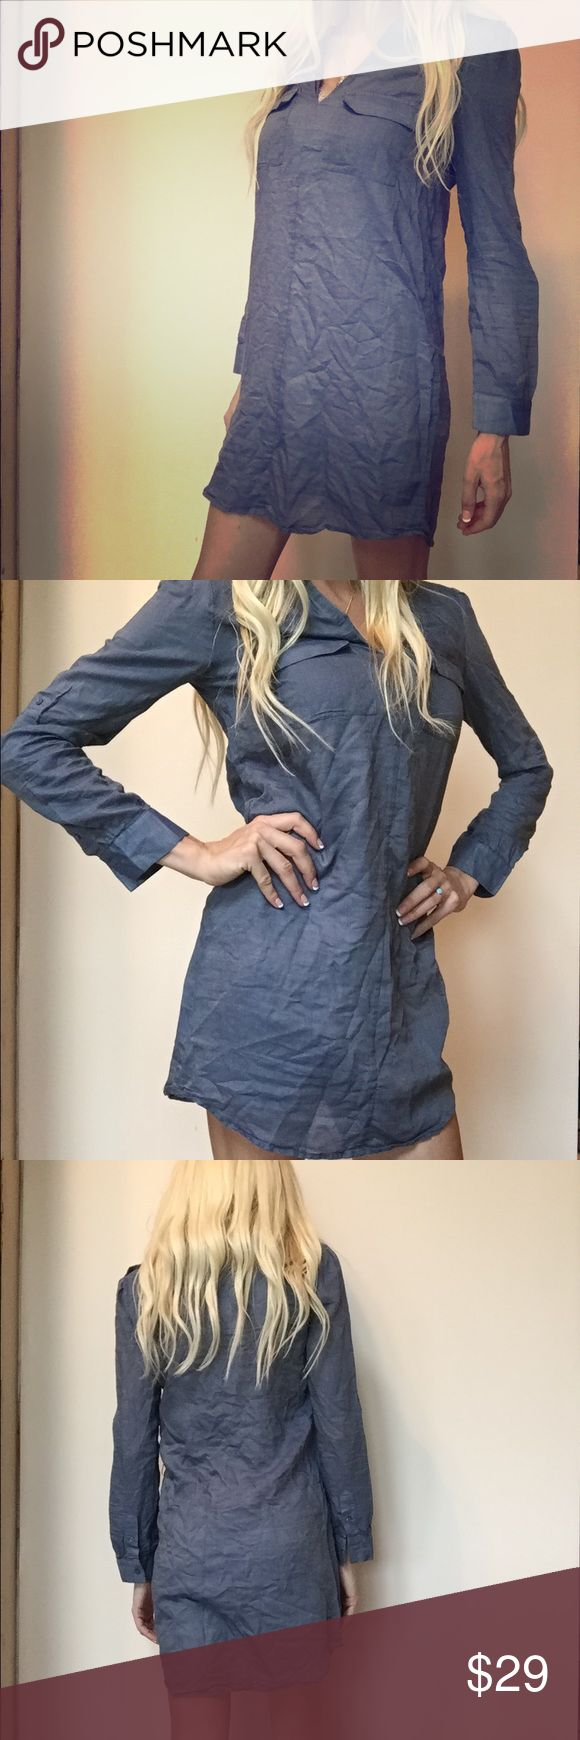 Joie Dress shirt/top So cute! Worn only twice! Excellent condition. Blue dress shirt, button up Joie Tops Blouses